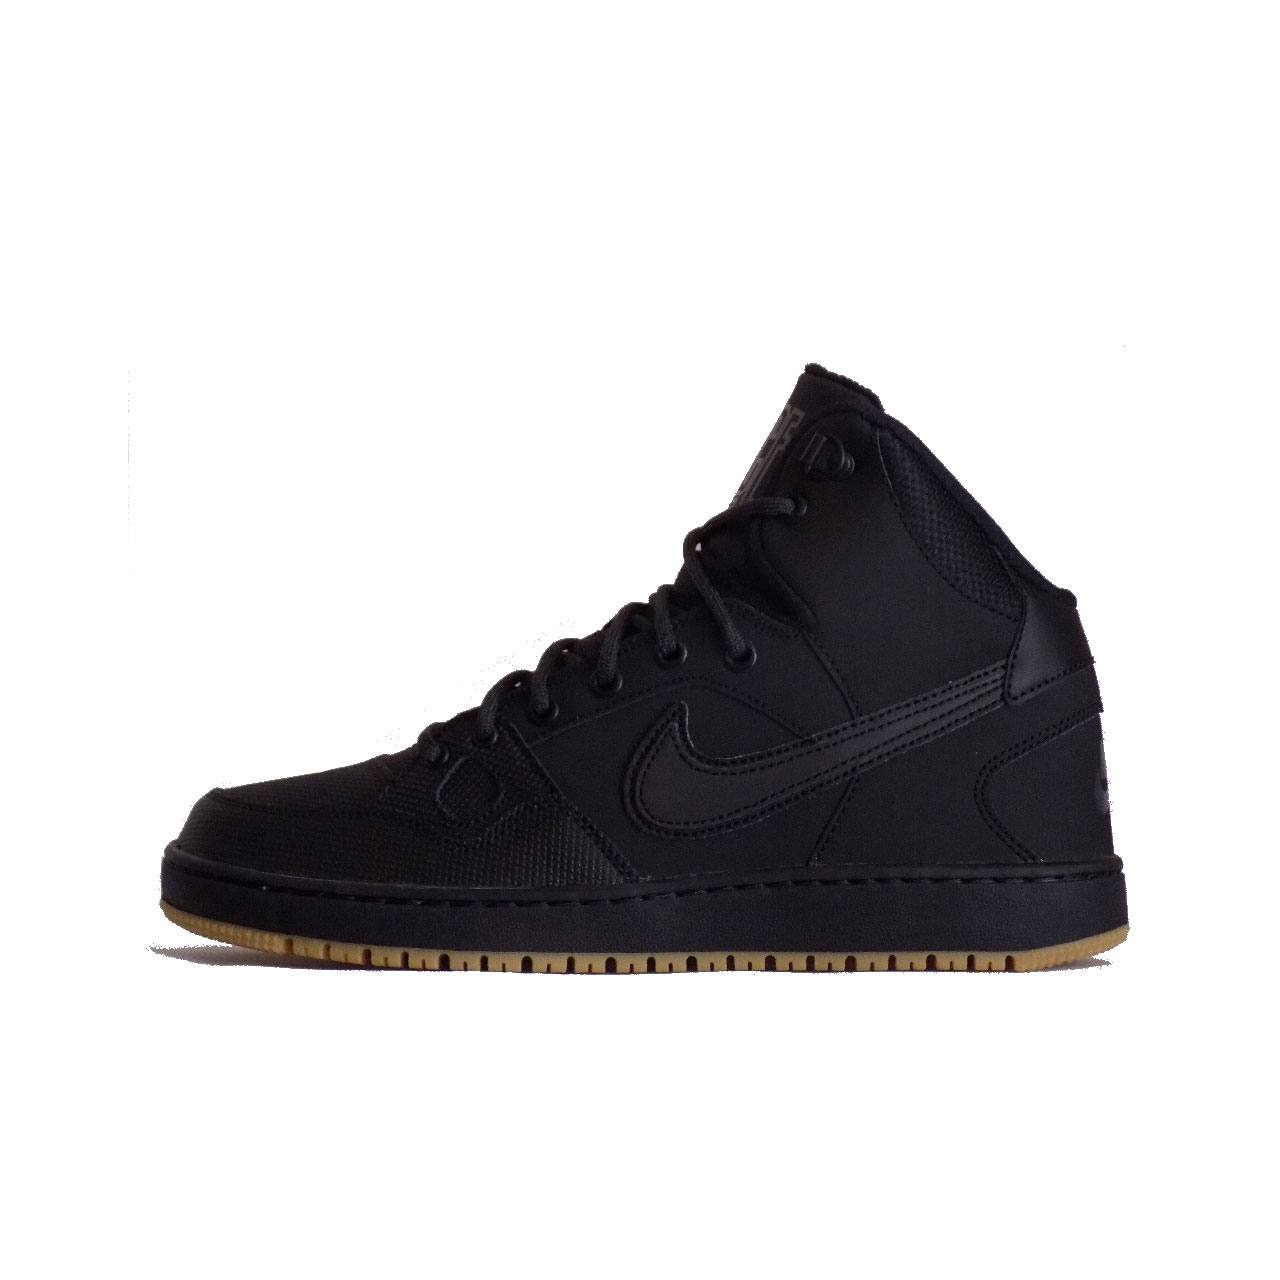 Nike SON OF FORCE 807242 009 ανδρικά παπούτσια αθλητικά